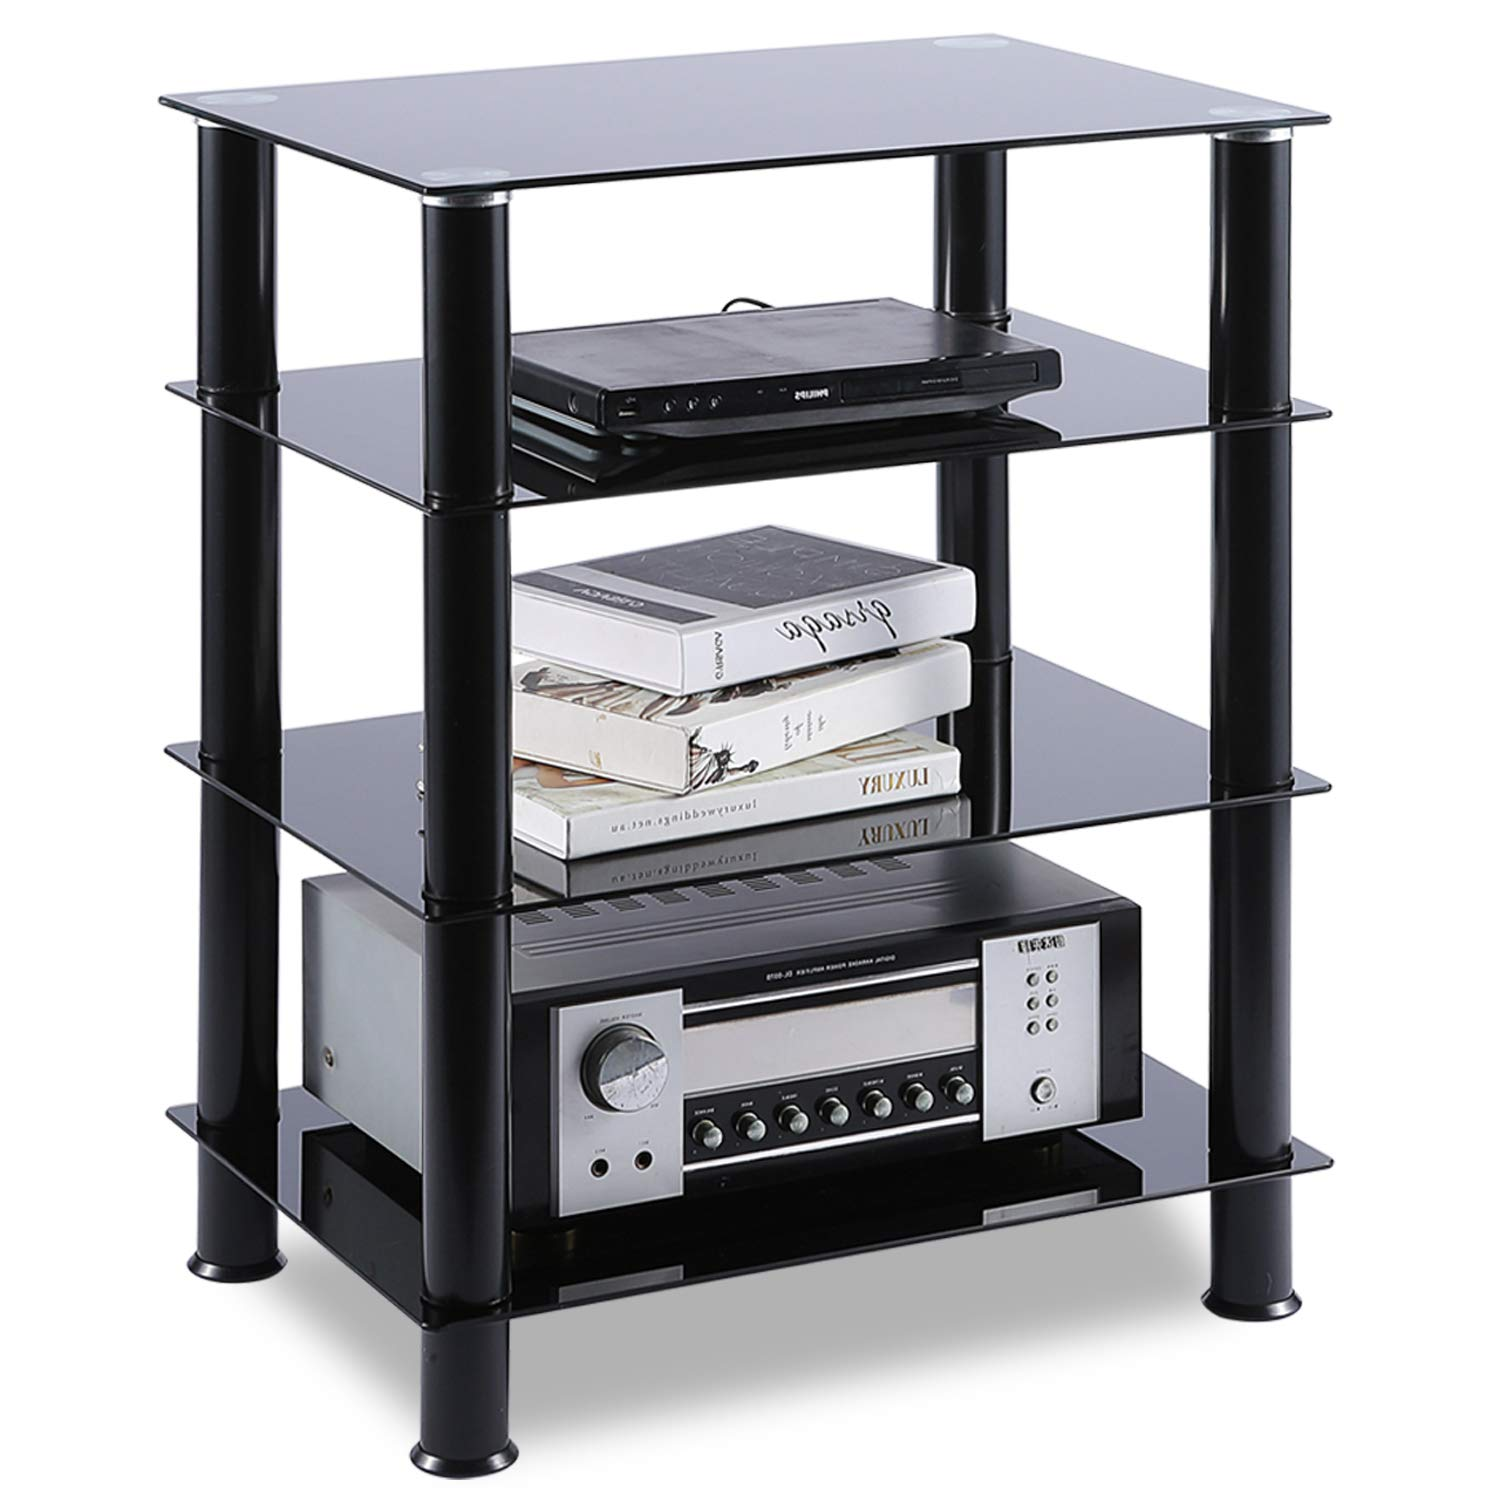 TAVR 4-Tiers Media Compontent TV Stand Audio Video Tower Tempered Glass Shevles for TV, Xbox, Gaming Consoles, Media Component, Streaming Device, HF1001 by TAVR Furniture